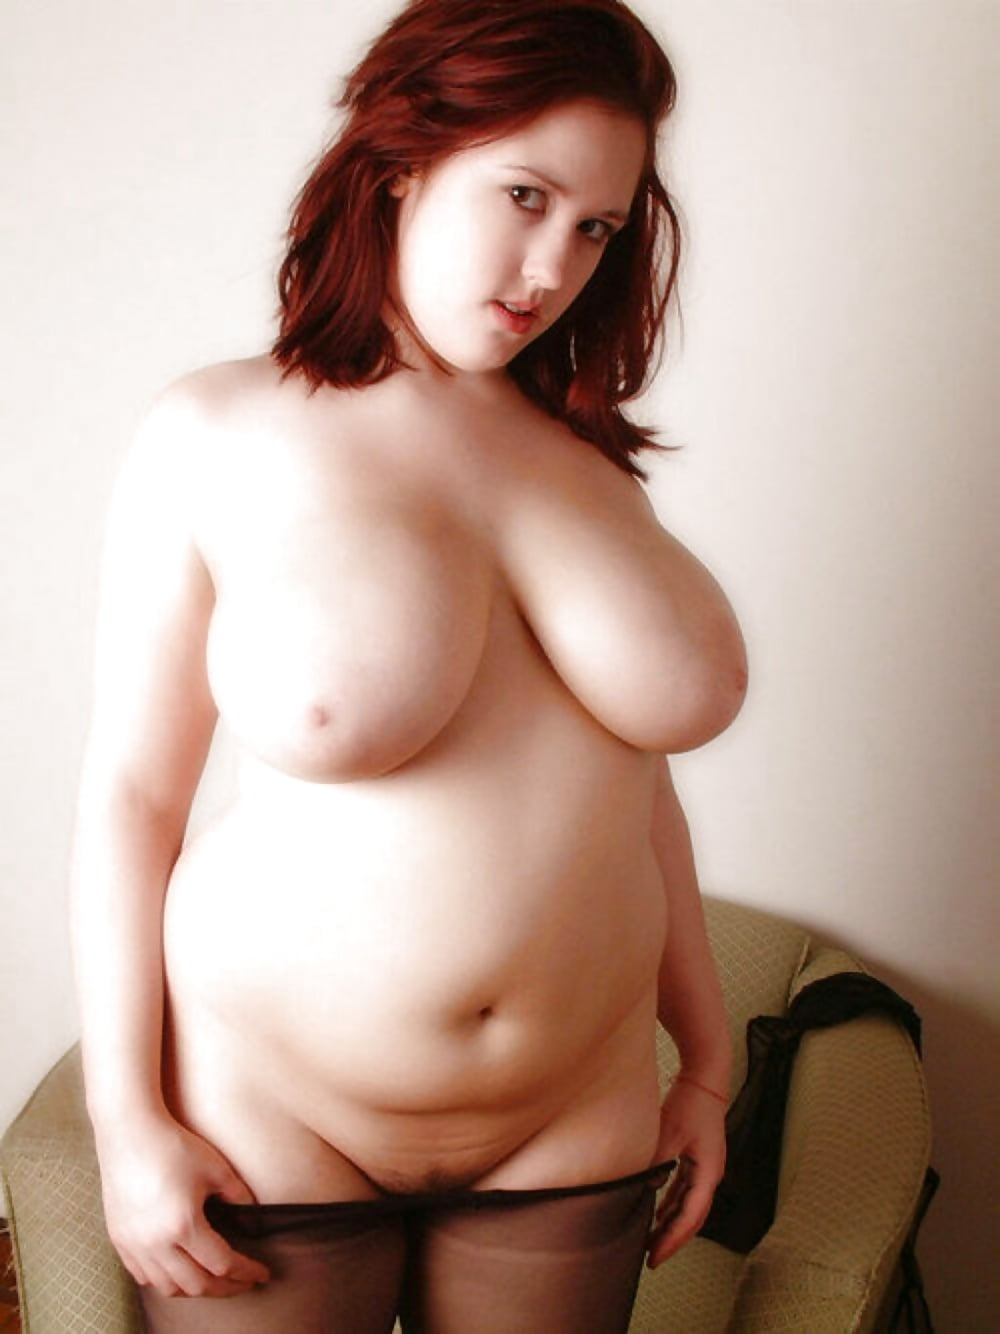 Cute young hot chubby girl portrait stock photo